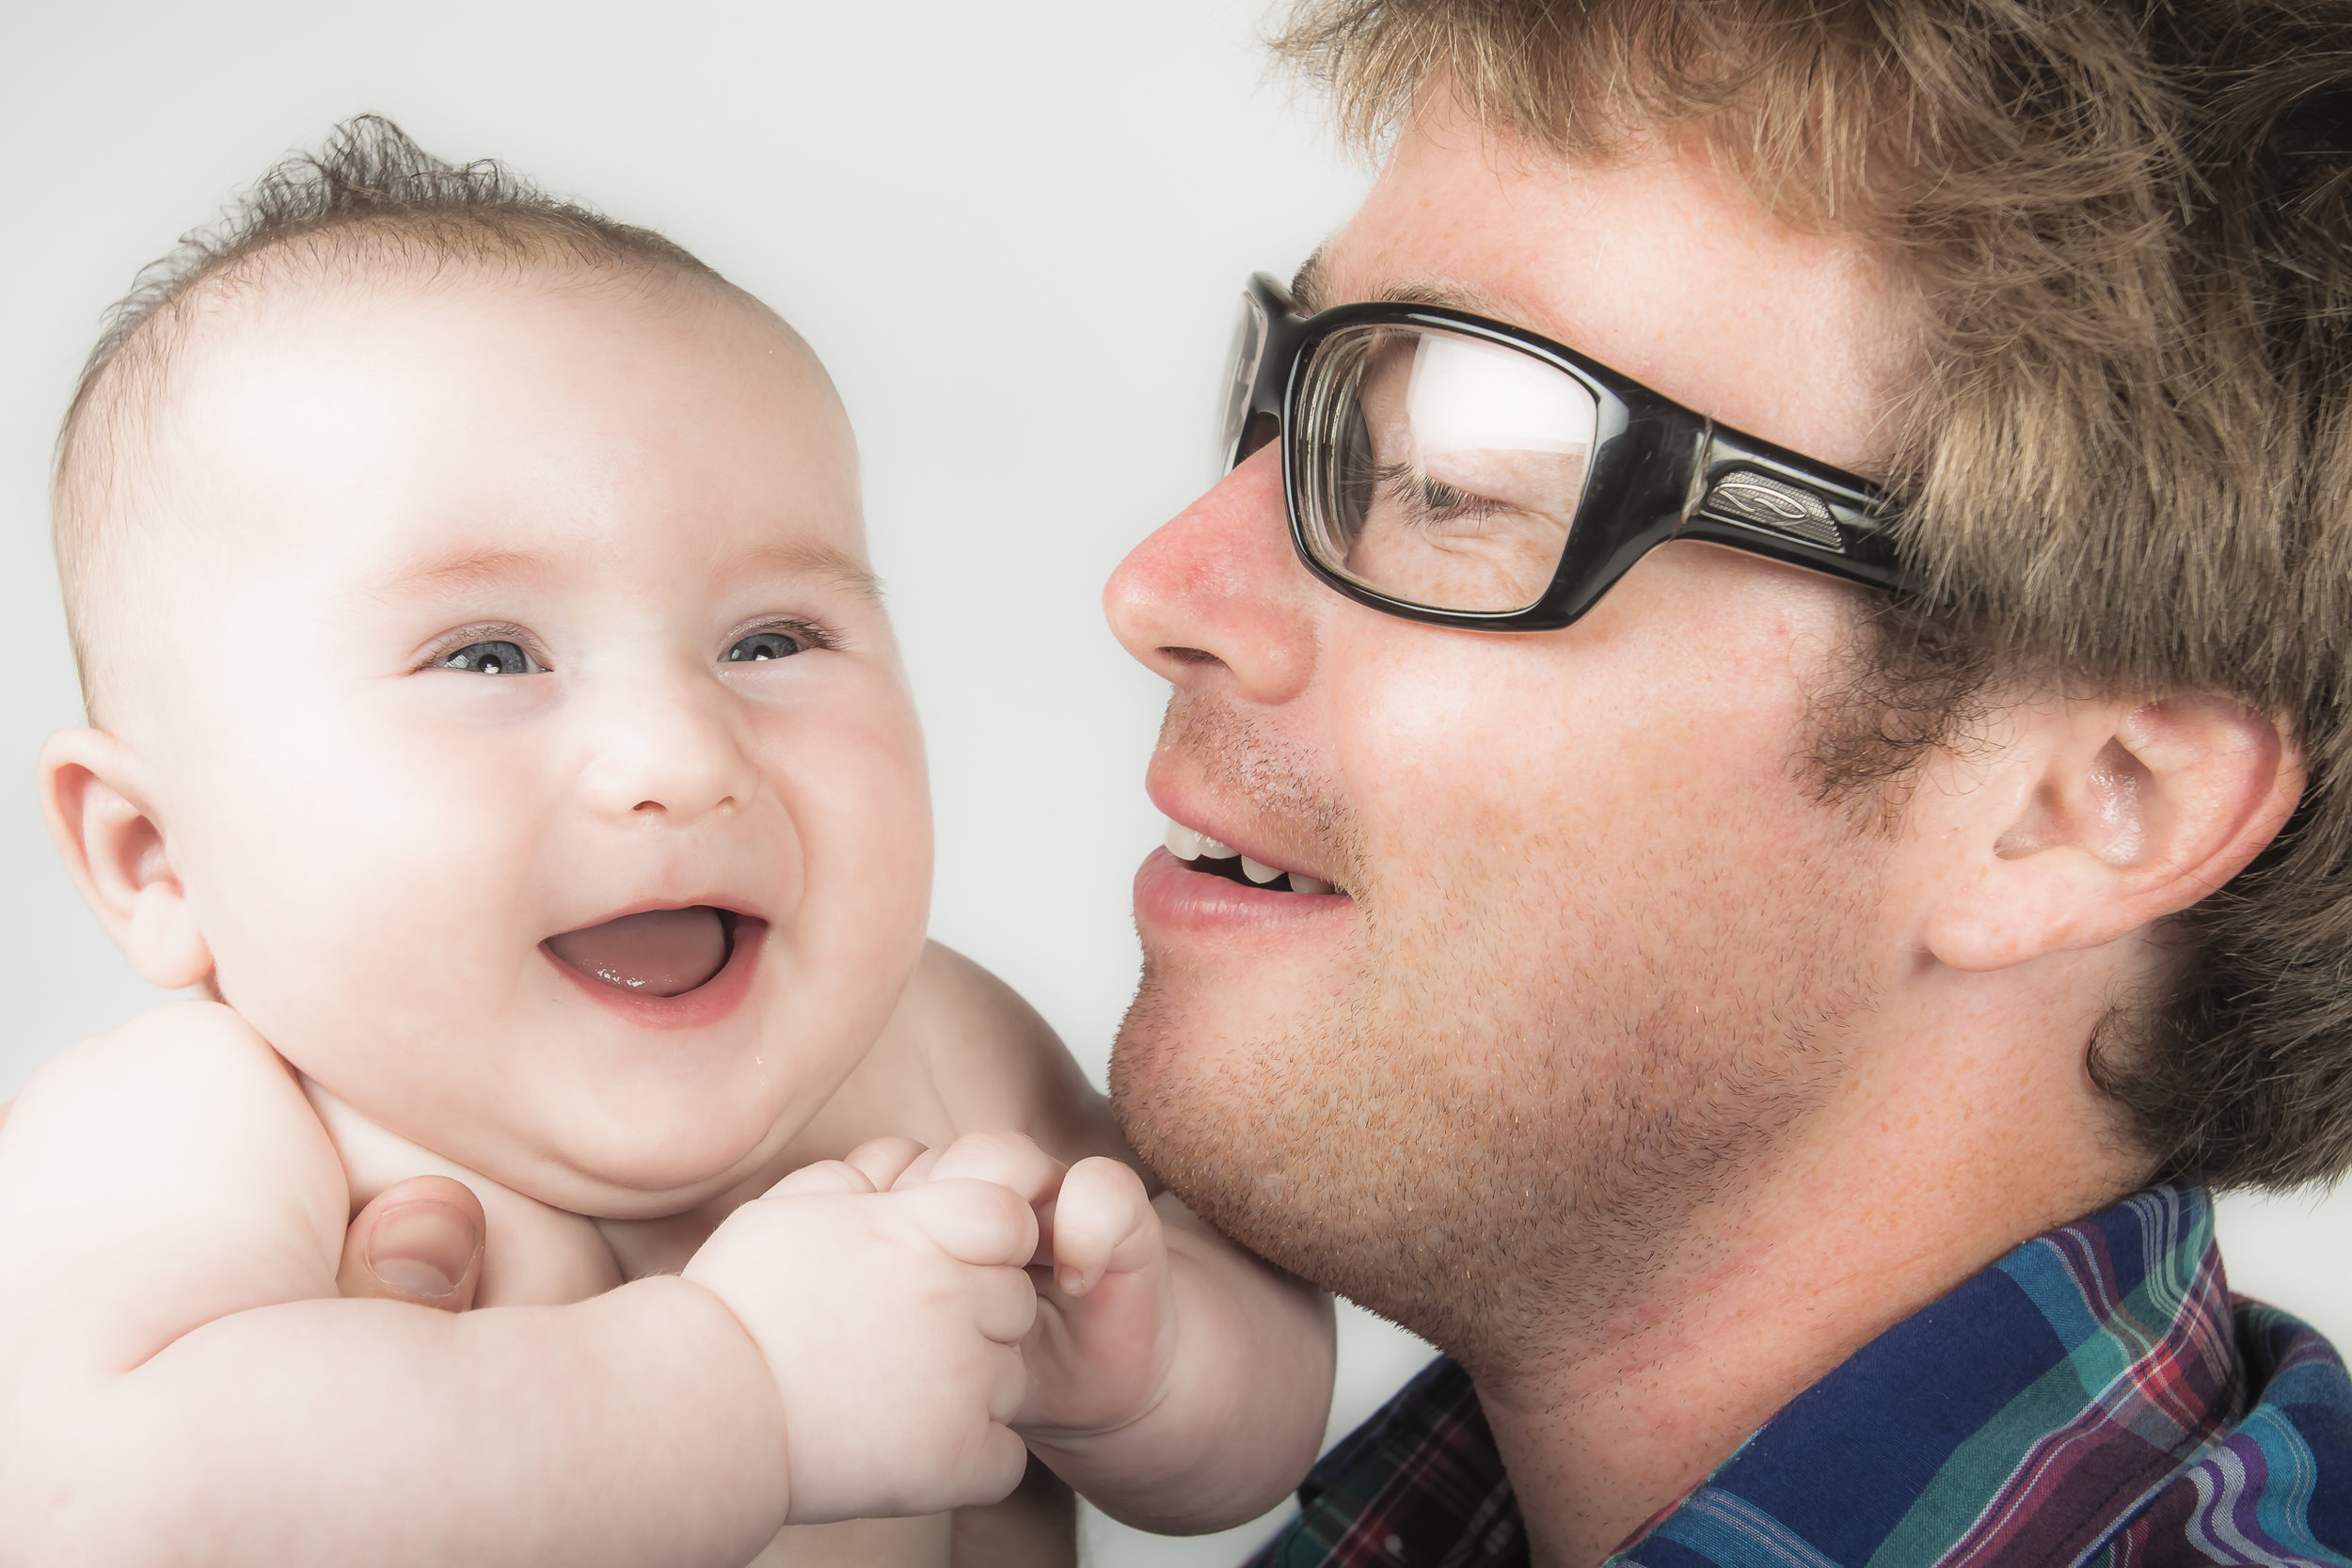 26 happy laughing modern baby with dad studio photography session.jpg